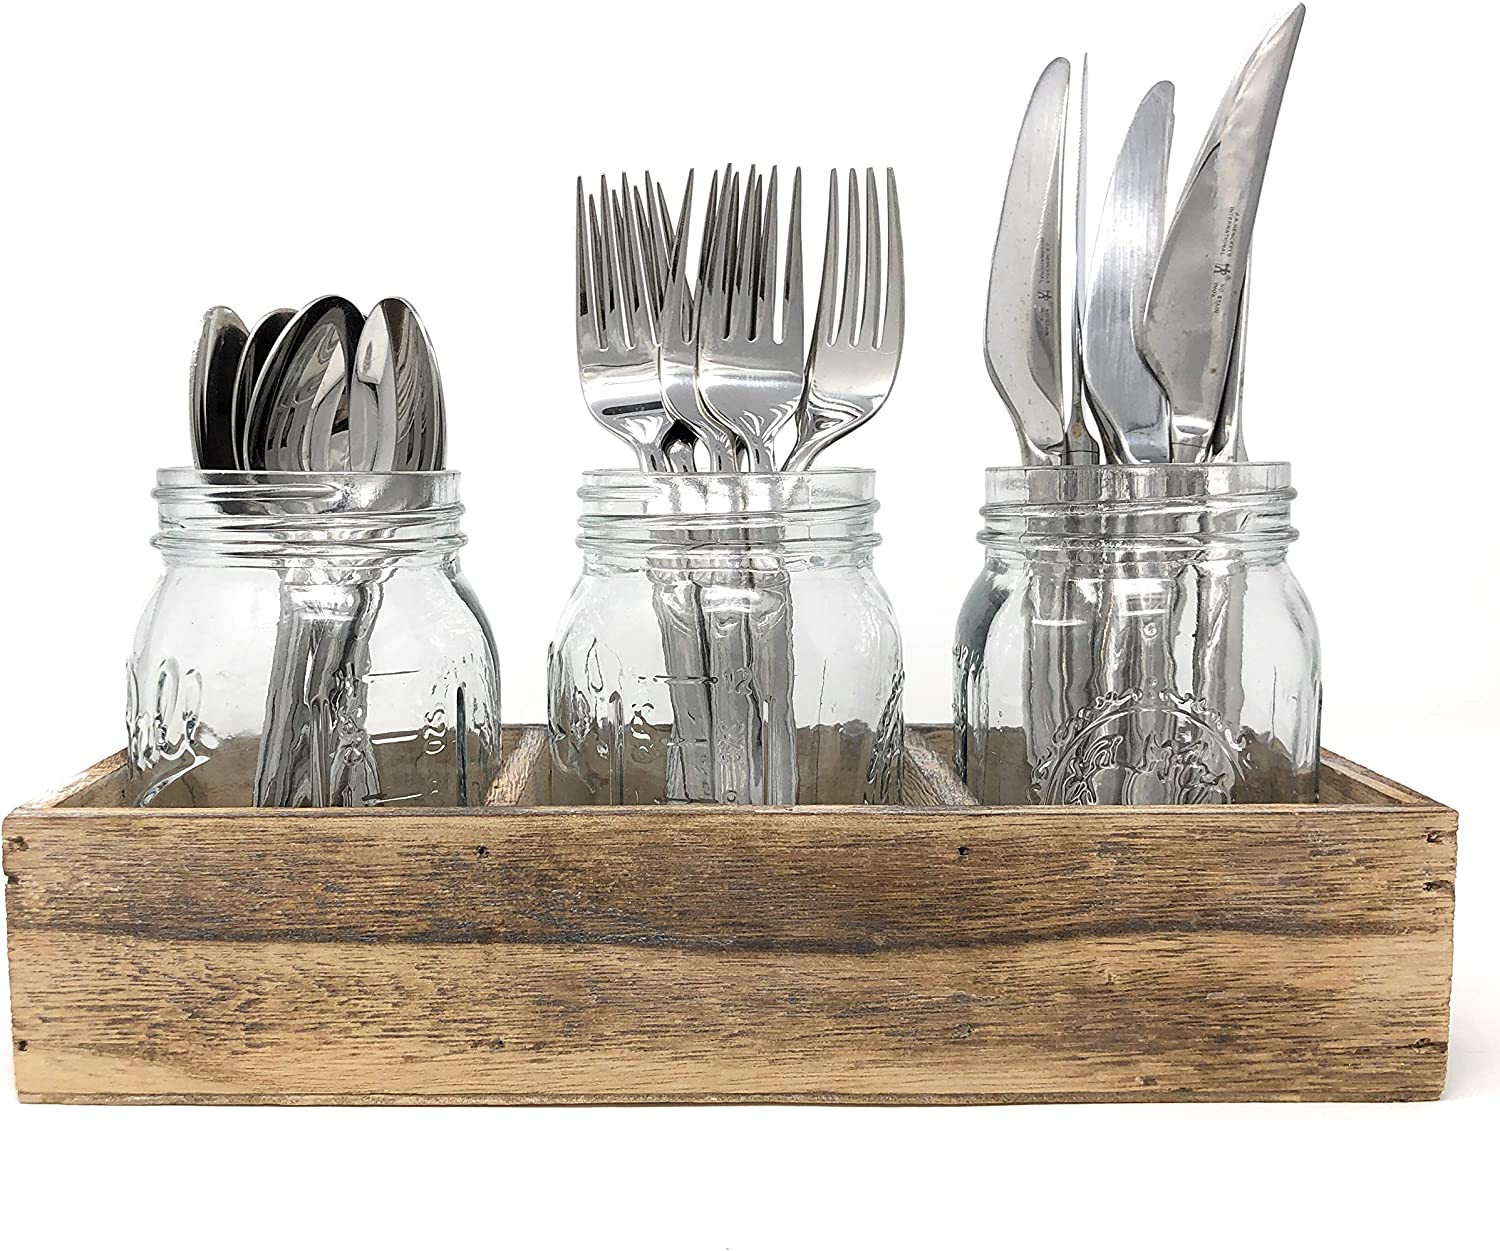 Flatware Caddy Cutlery Holder Utensil Organizer with 3 Glass Mason Jars in Farmhouse Rustic Style Wood Tray For Silverware Display on Kitchen Countertop, Dining Table and Party (Rustic Wood)